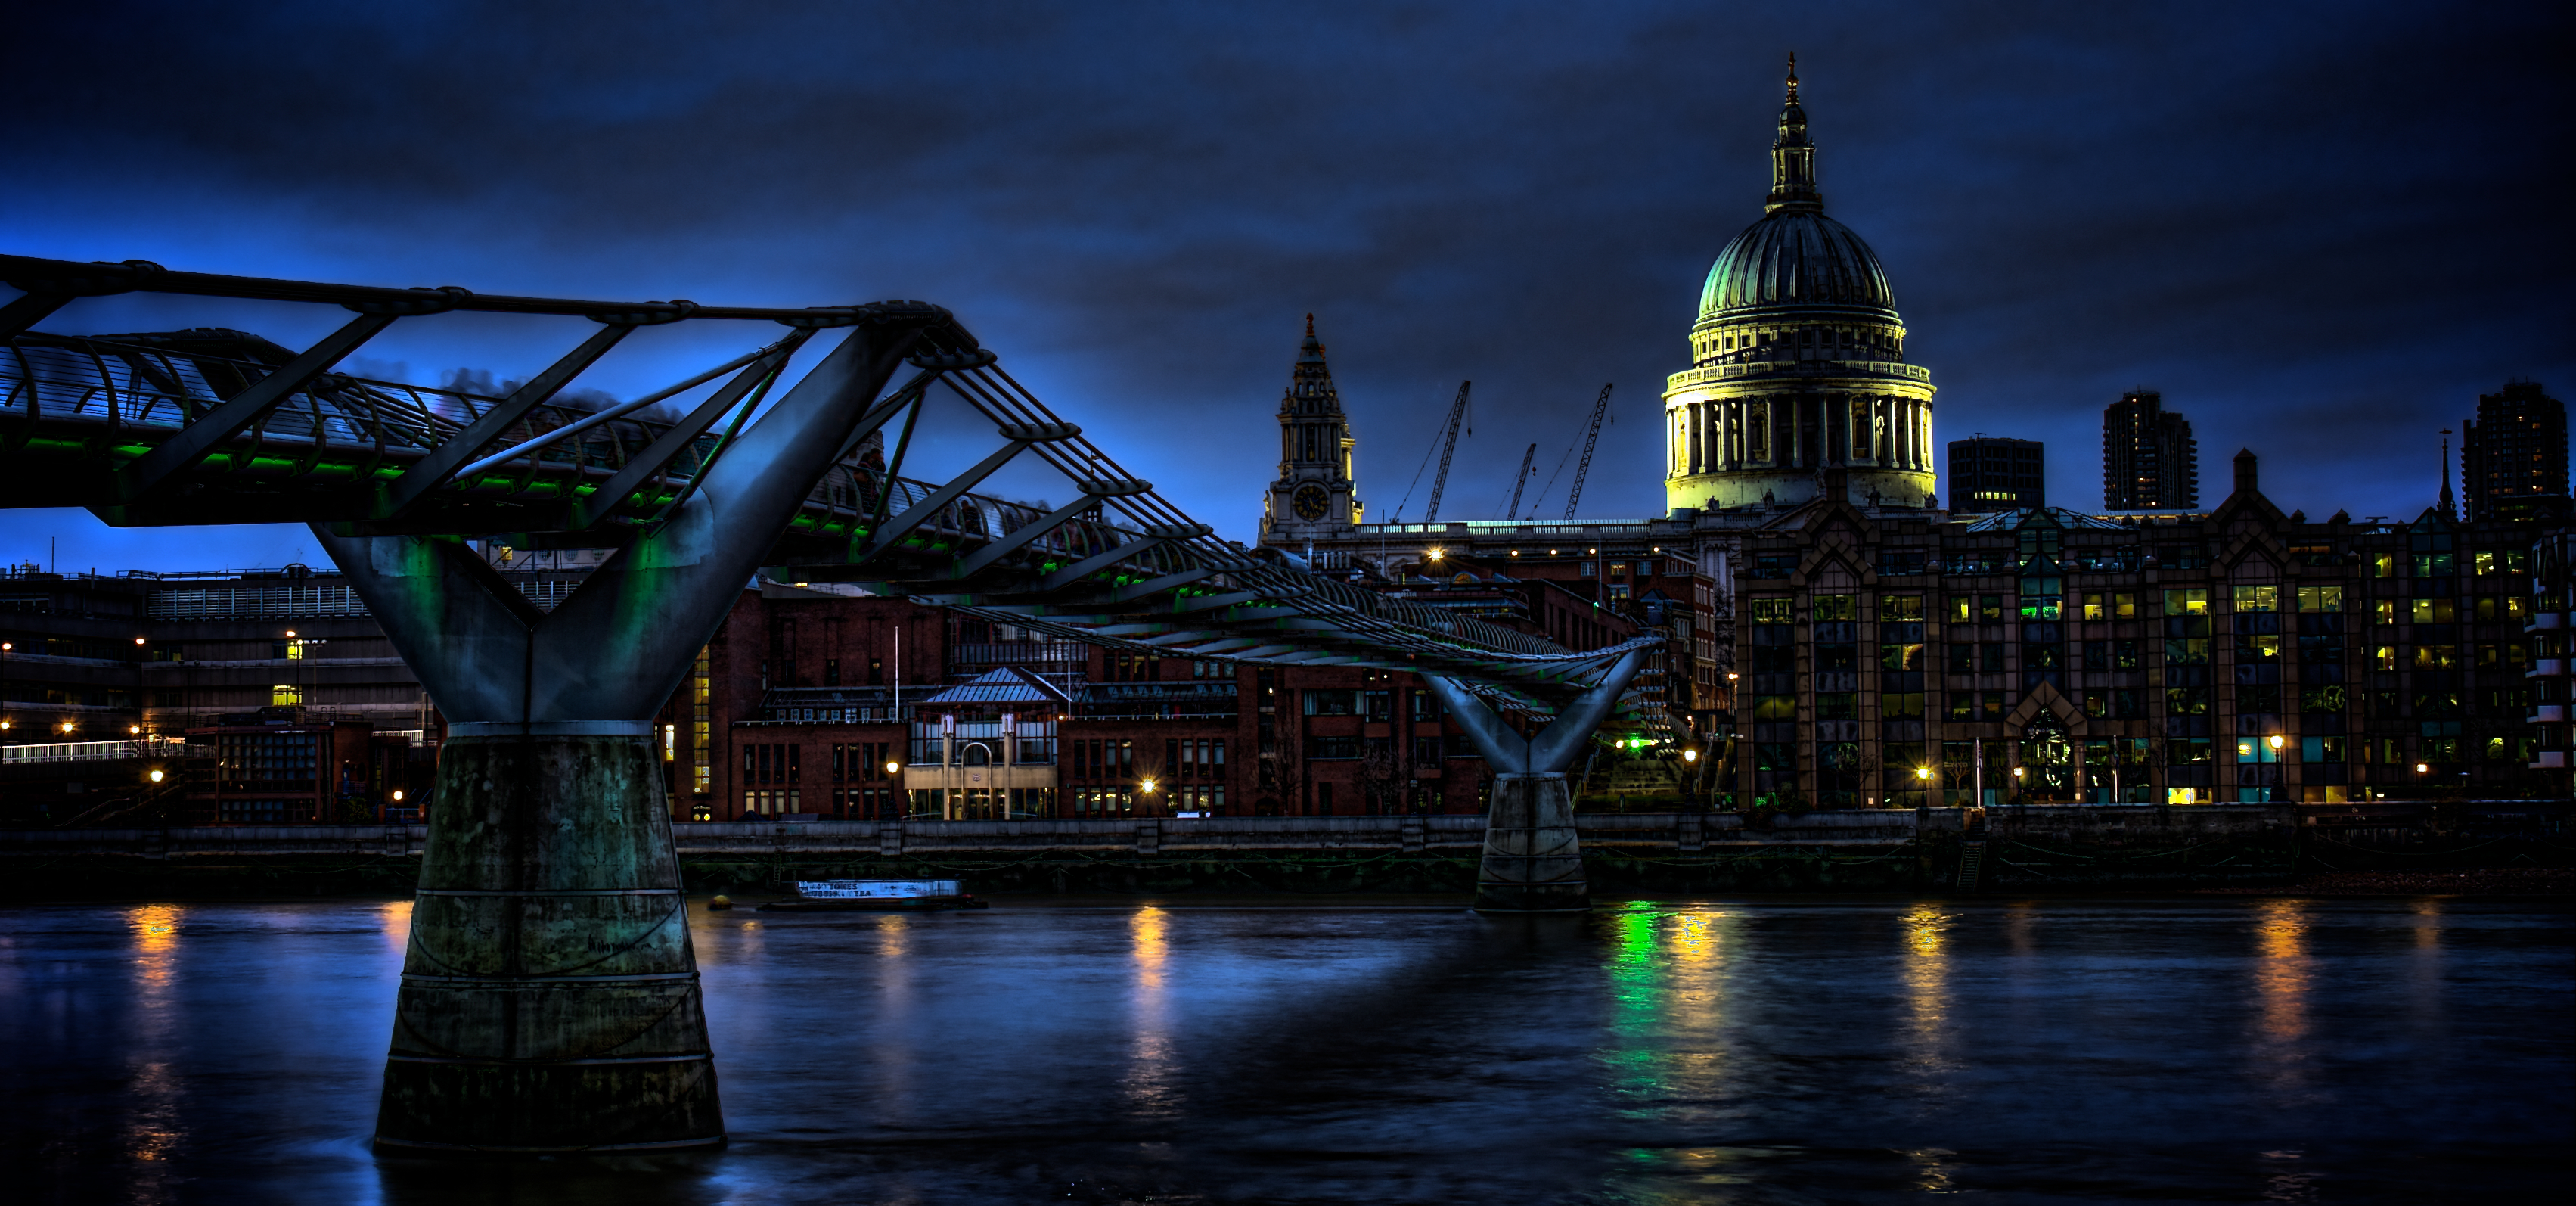 St Pauls and Millennium Bridge, UK